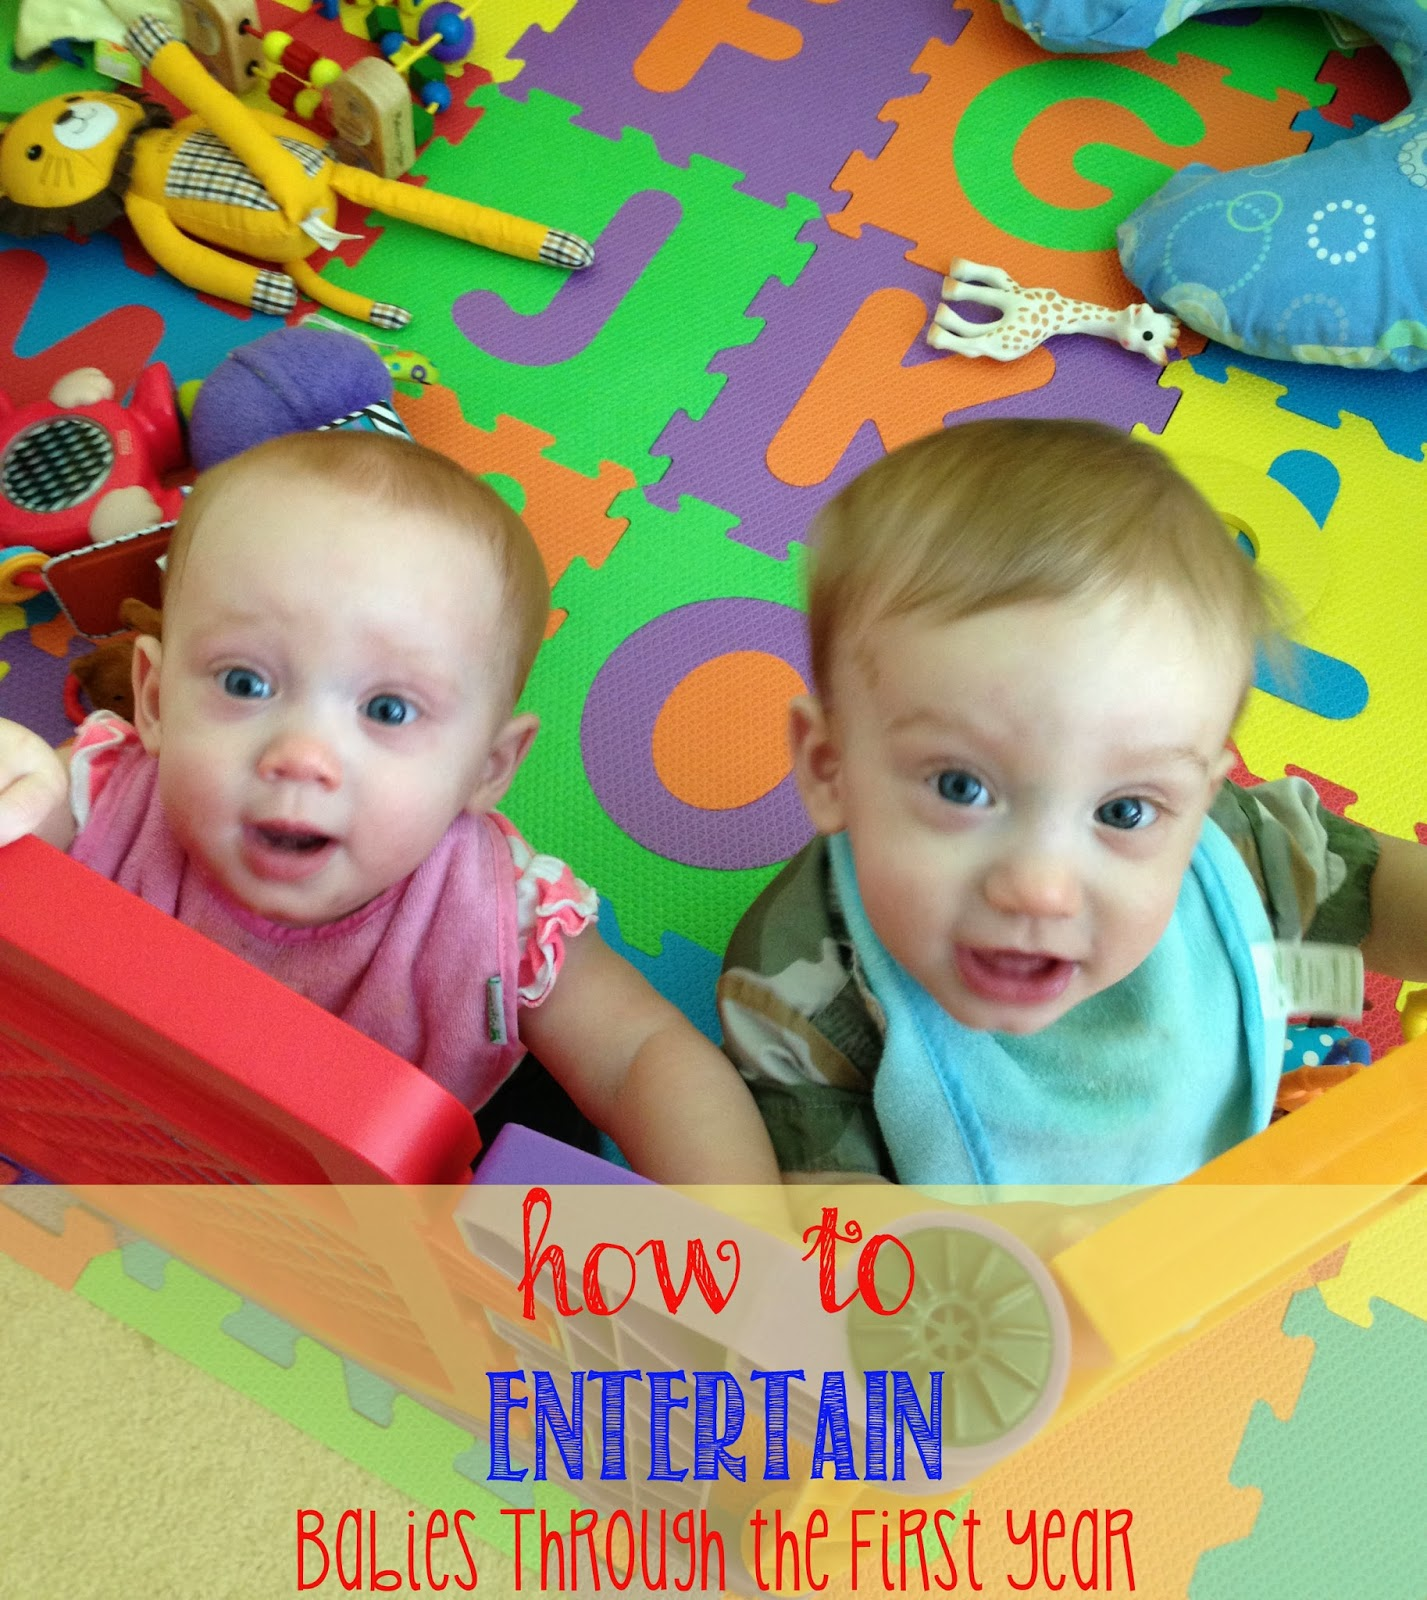 Purposeful play how to's and toy suggestions for baby's first year #play #babies #homeschooling #totschool